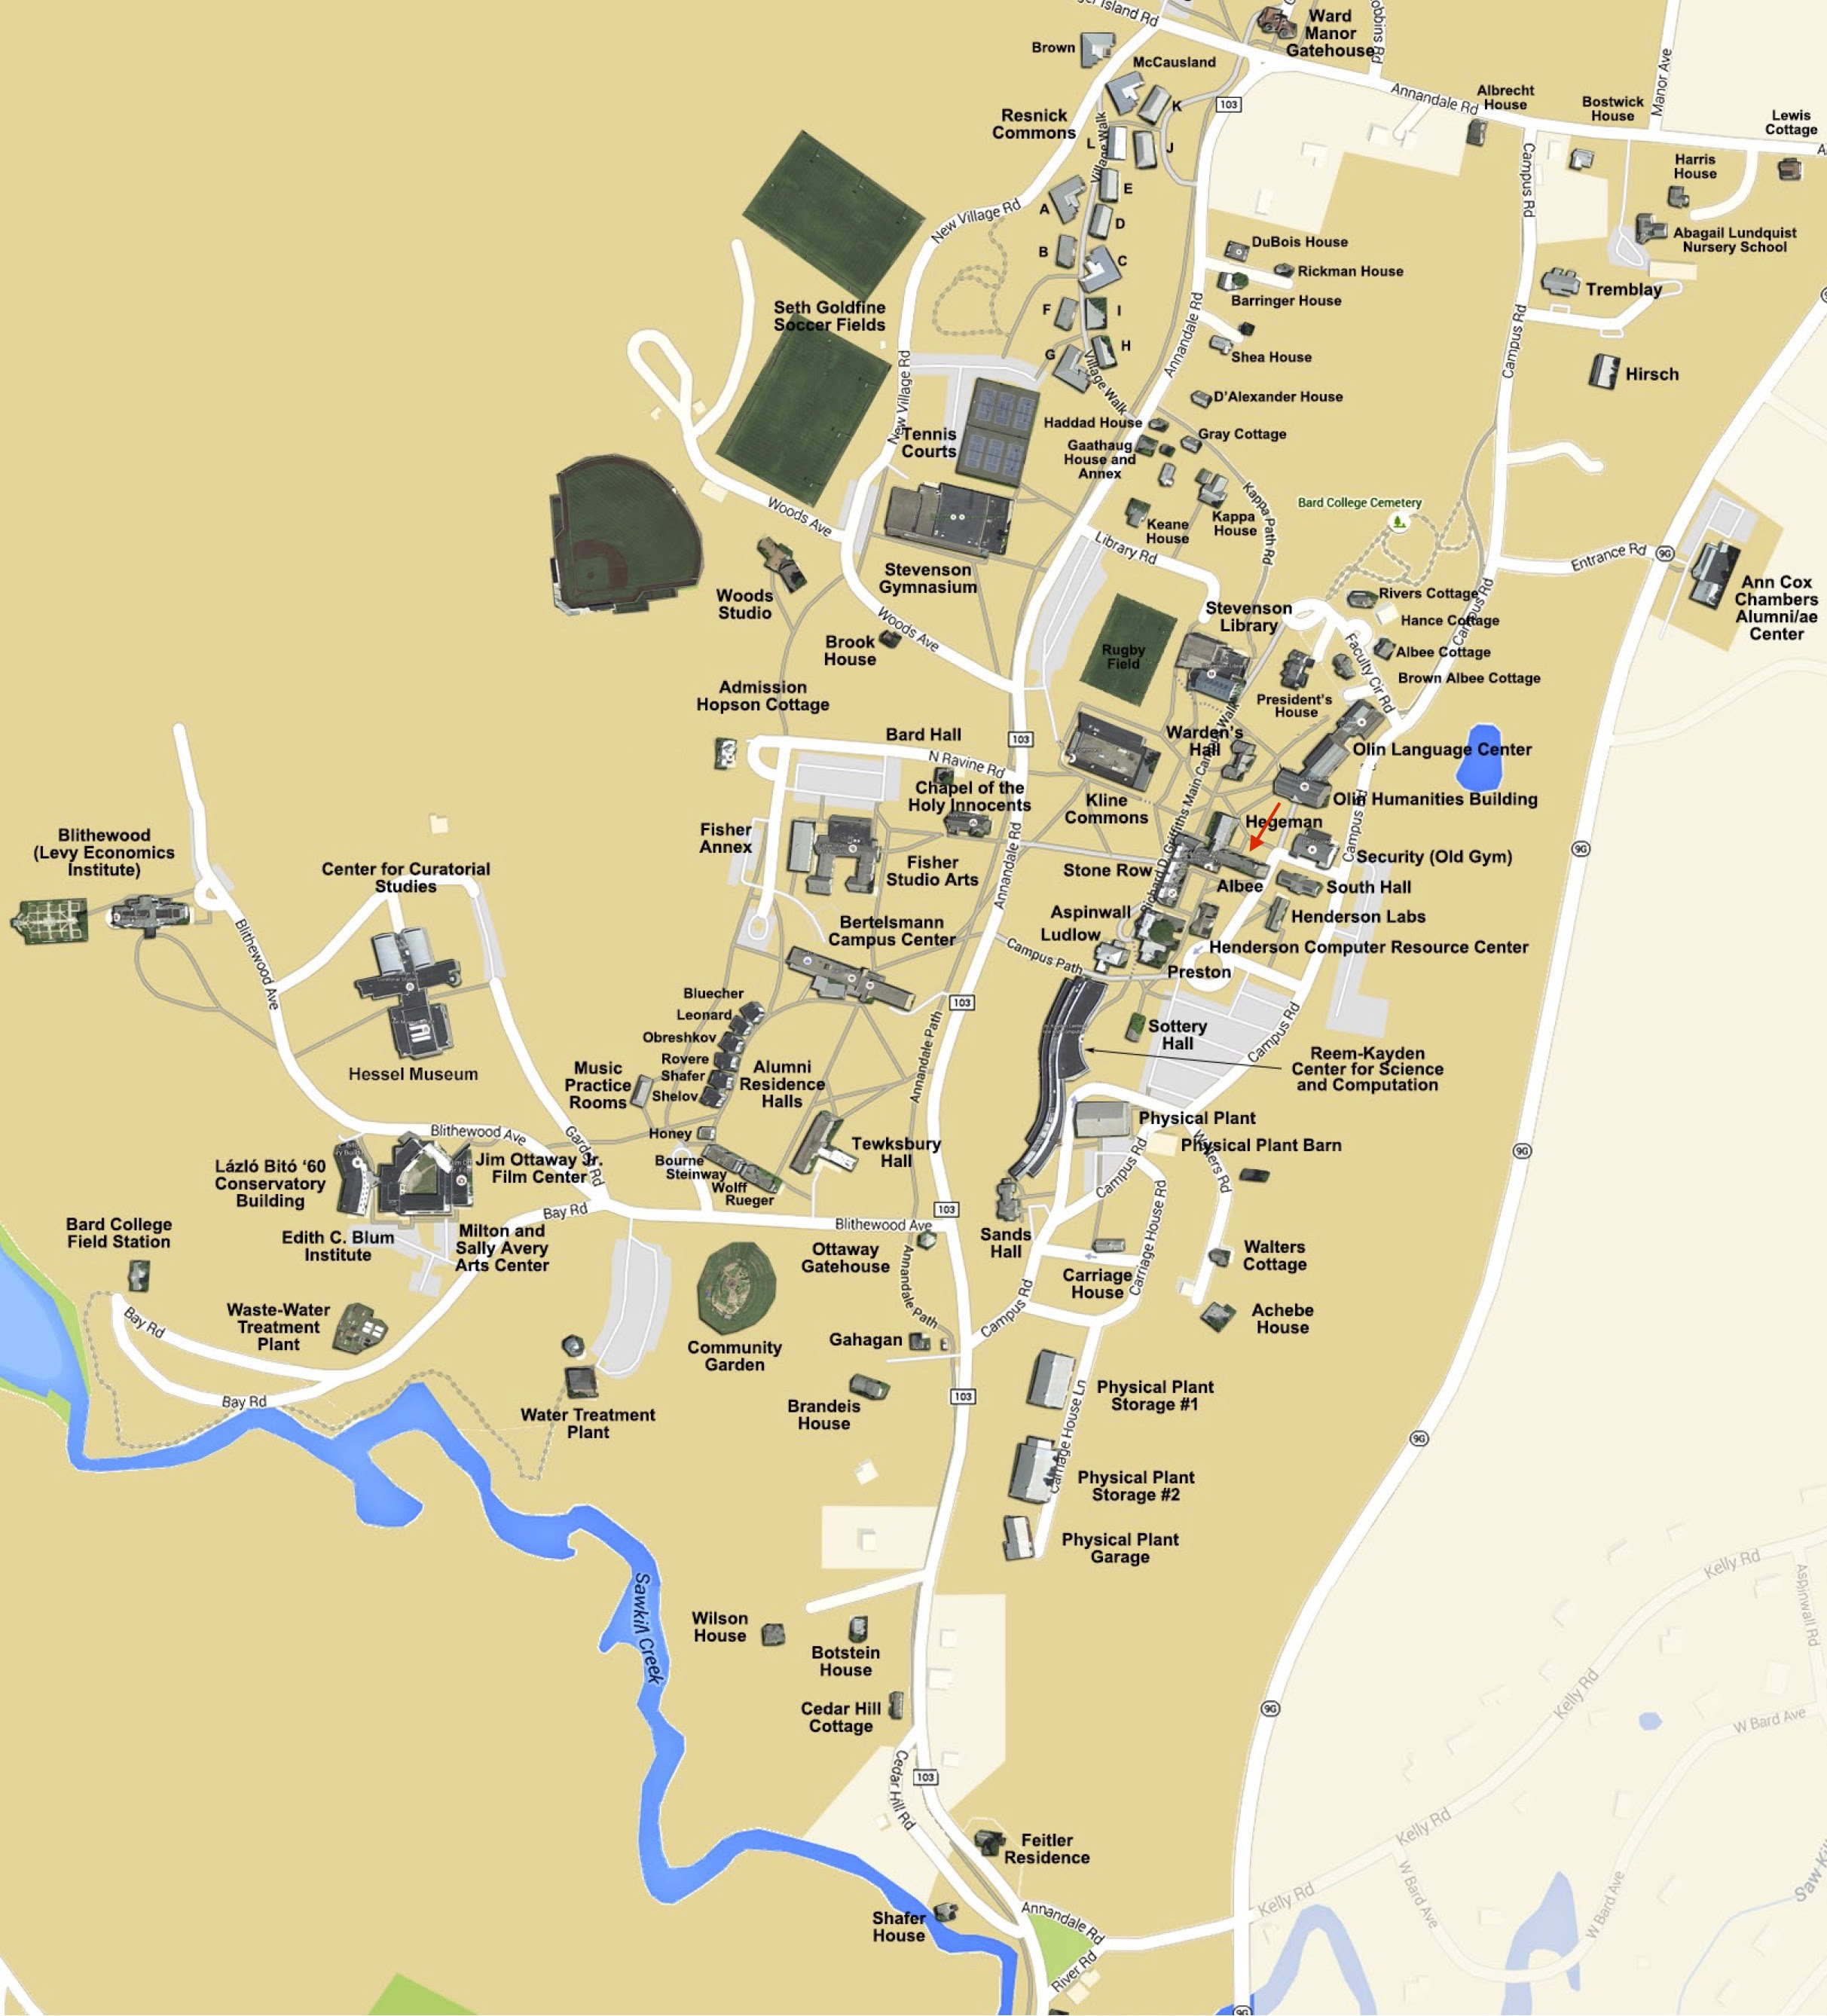 Bard College Map | Station Map